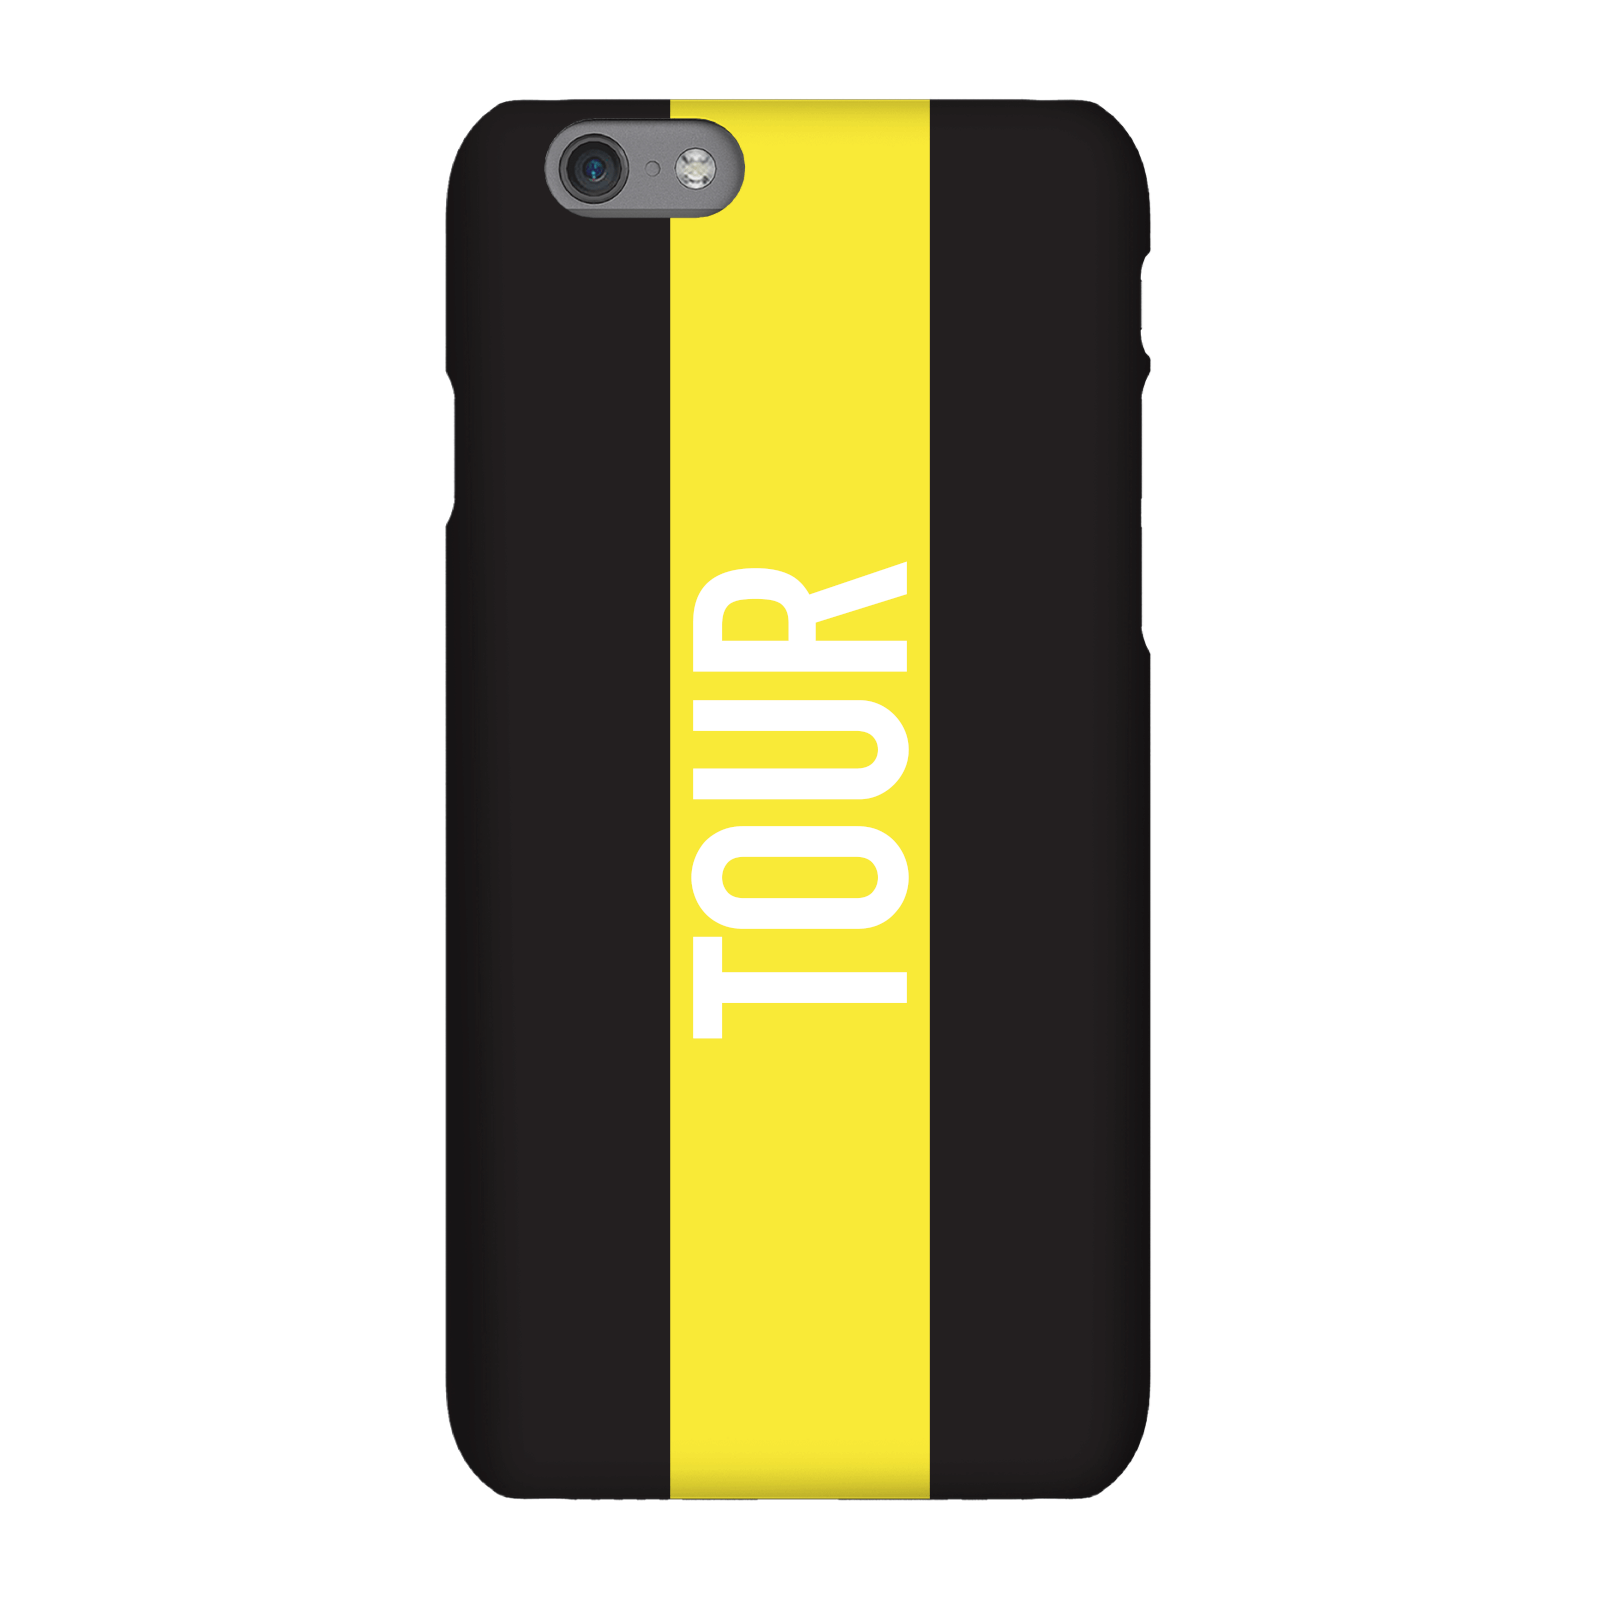 Tour Phone Case for iPhone and Android - Samsung S6 Edge - Snap Case - Gloss